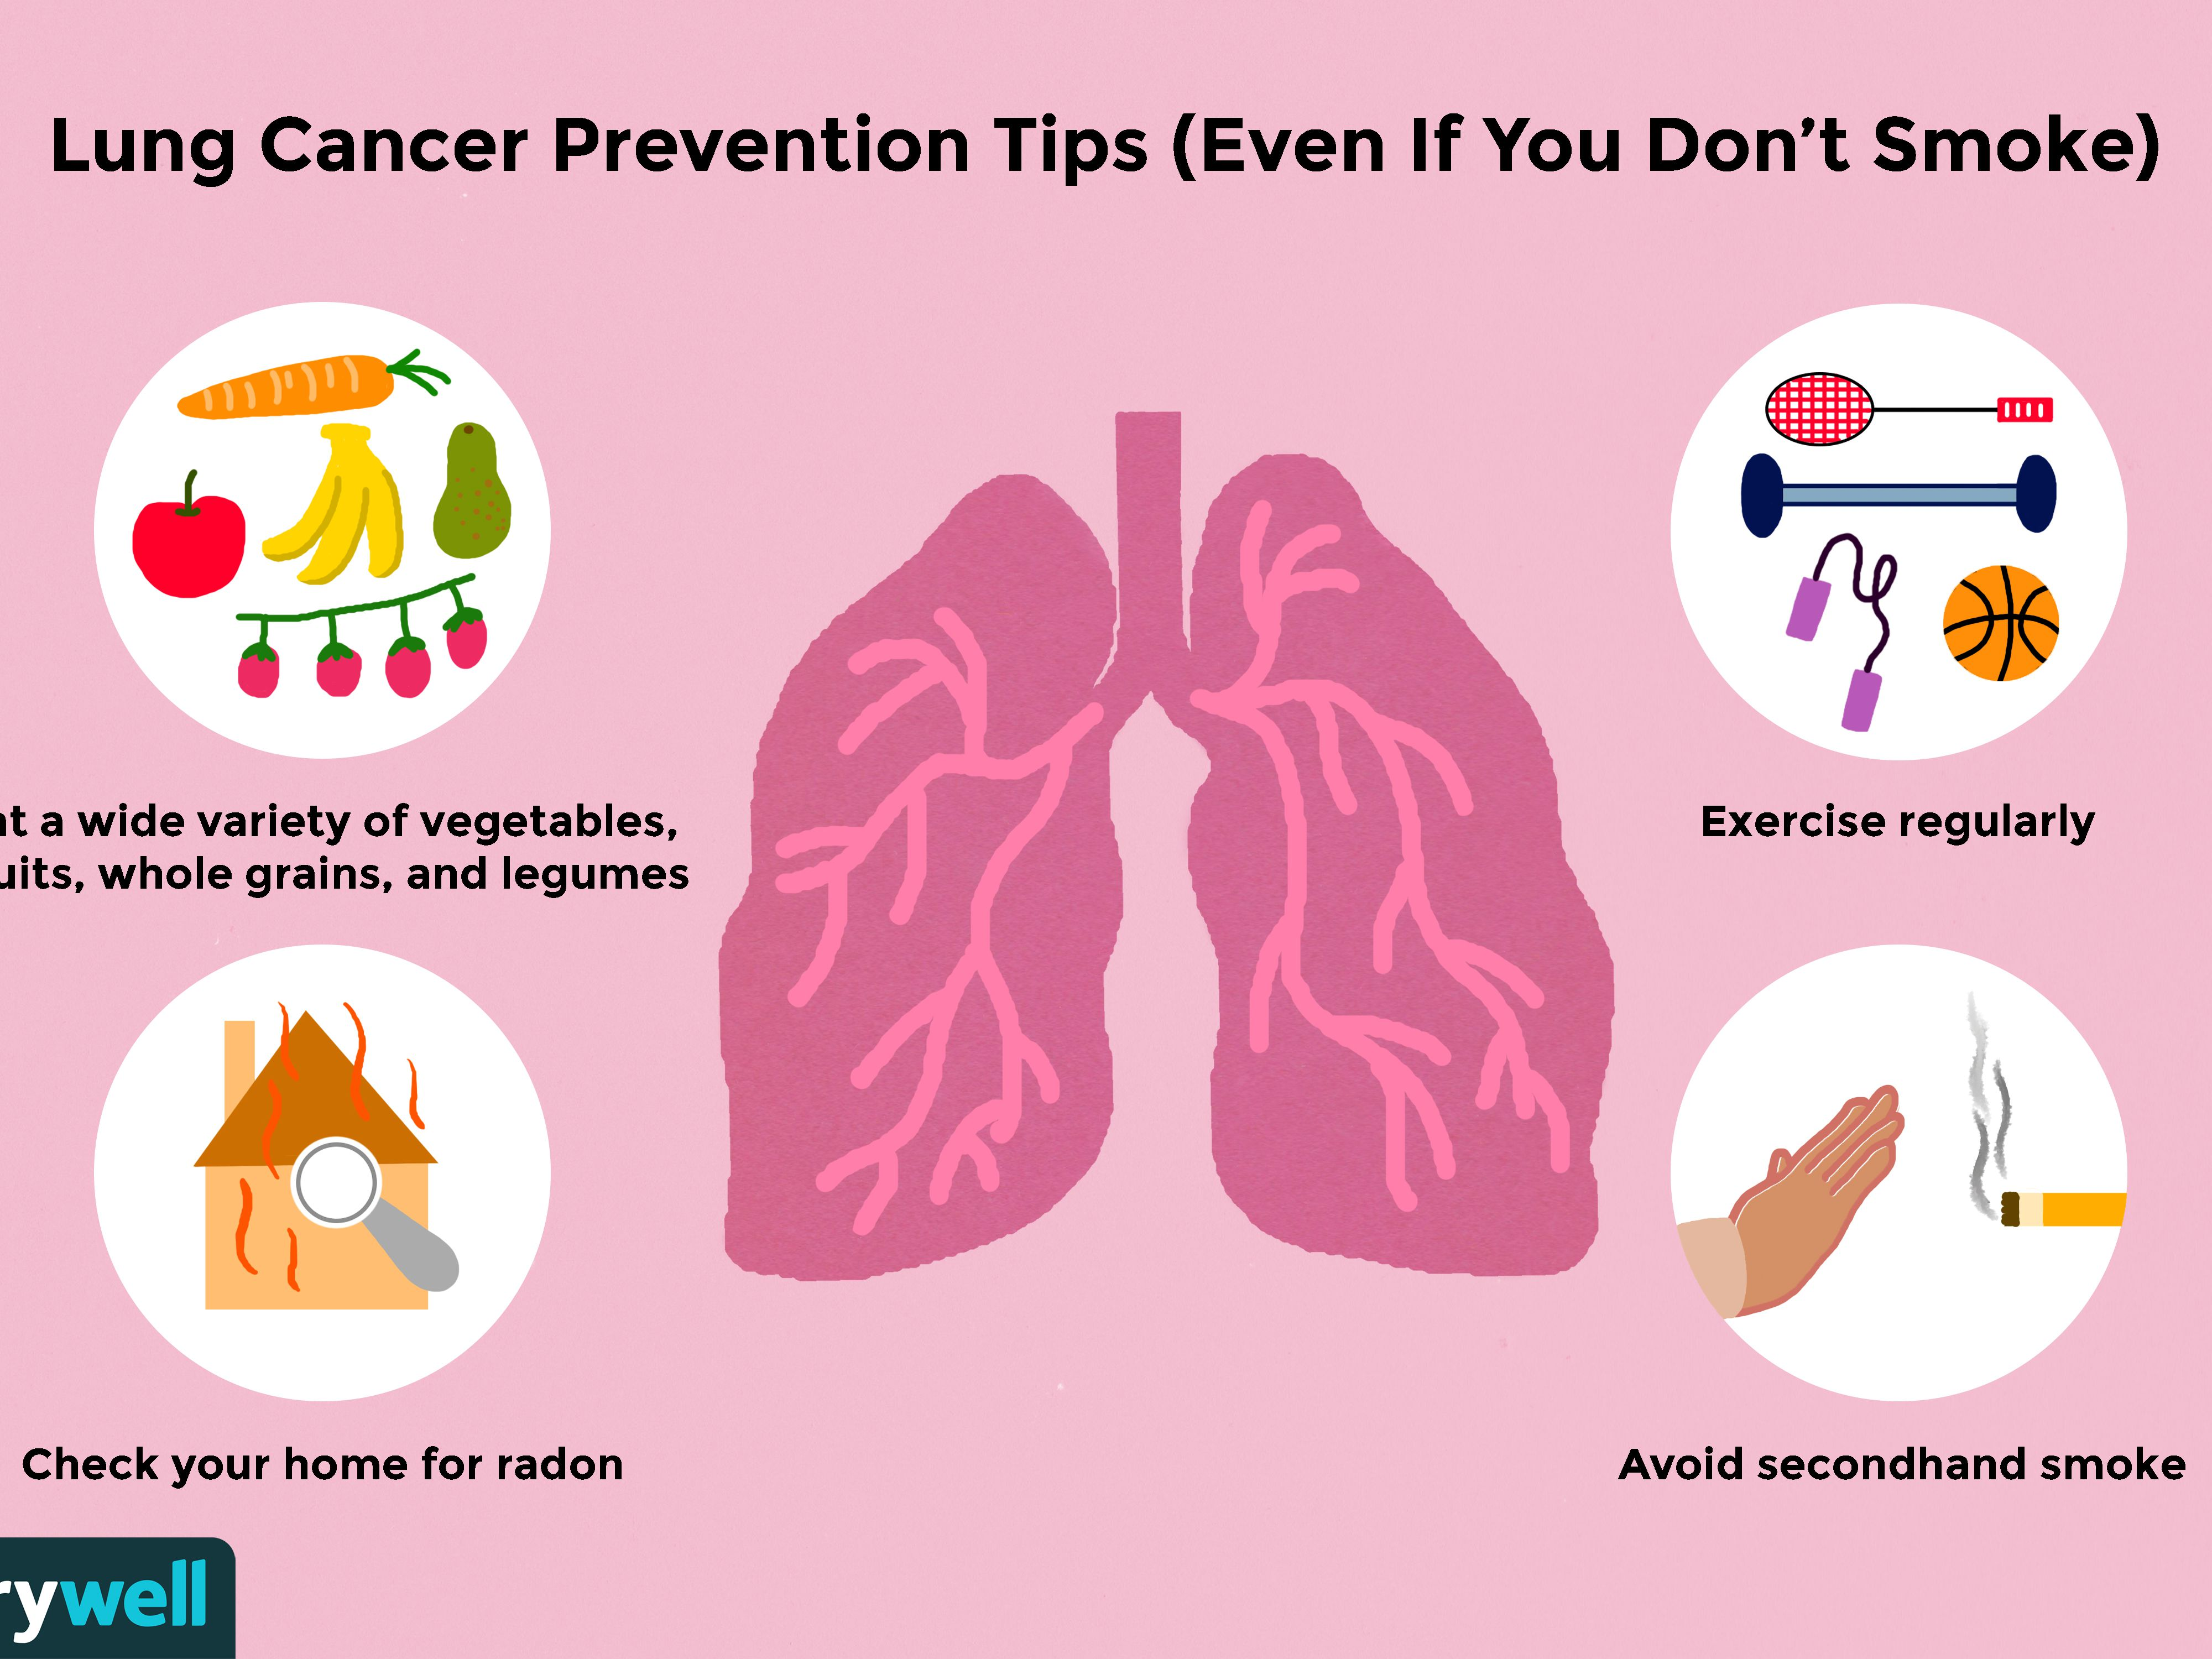 hpv lung cancer survival rate)